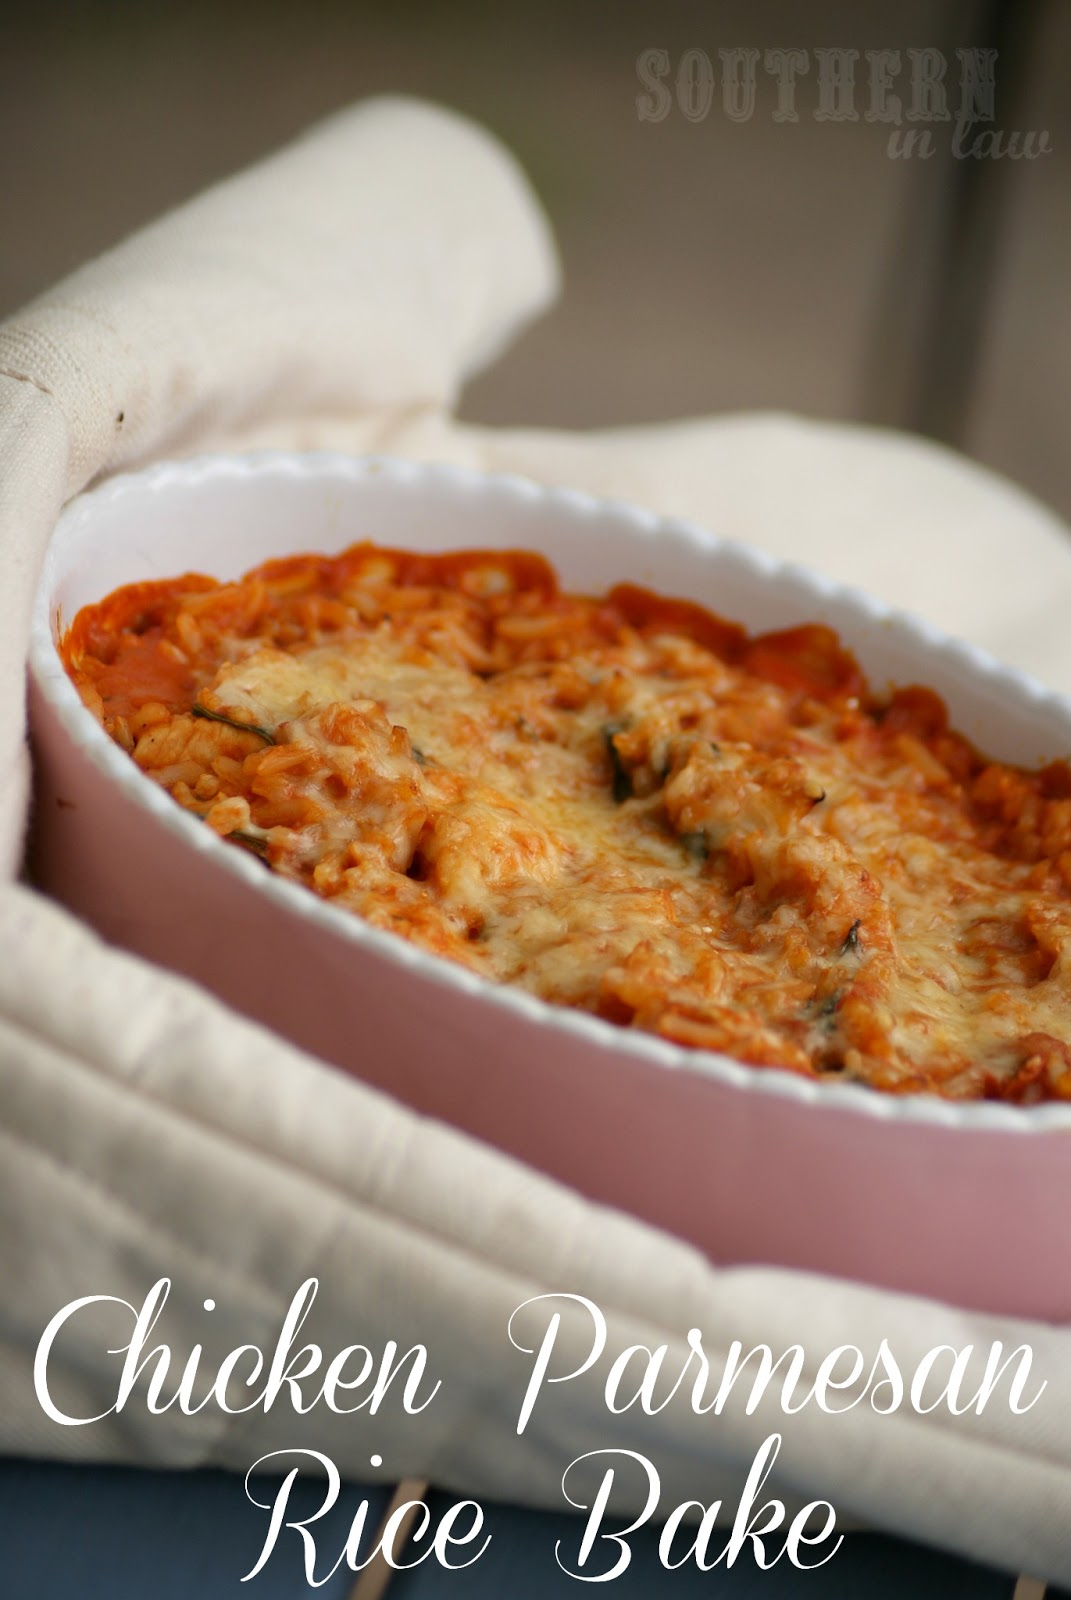 Chicken Parmesan Rice Bake serves one, easily multiplied